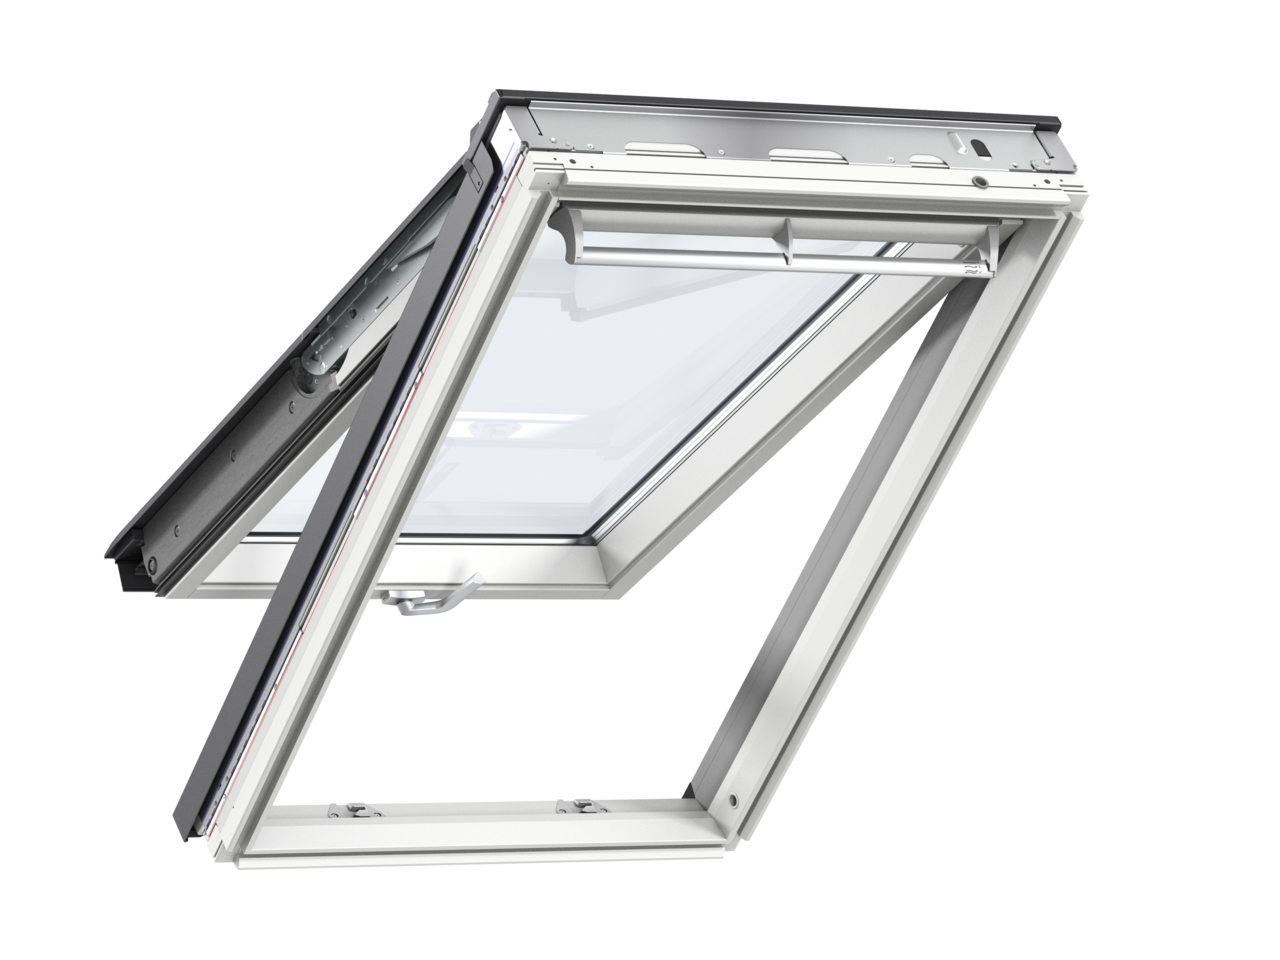 Velux GPL CK06 550 x 1180mm Top Hung Standard 70Pane Roof Window - White Painted